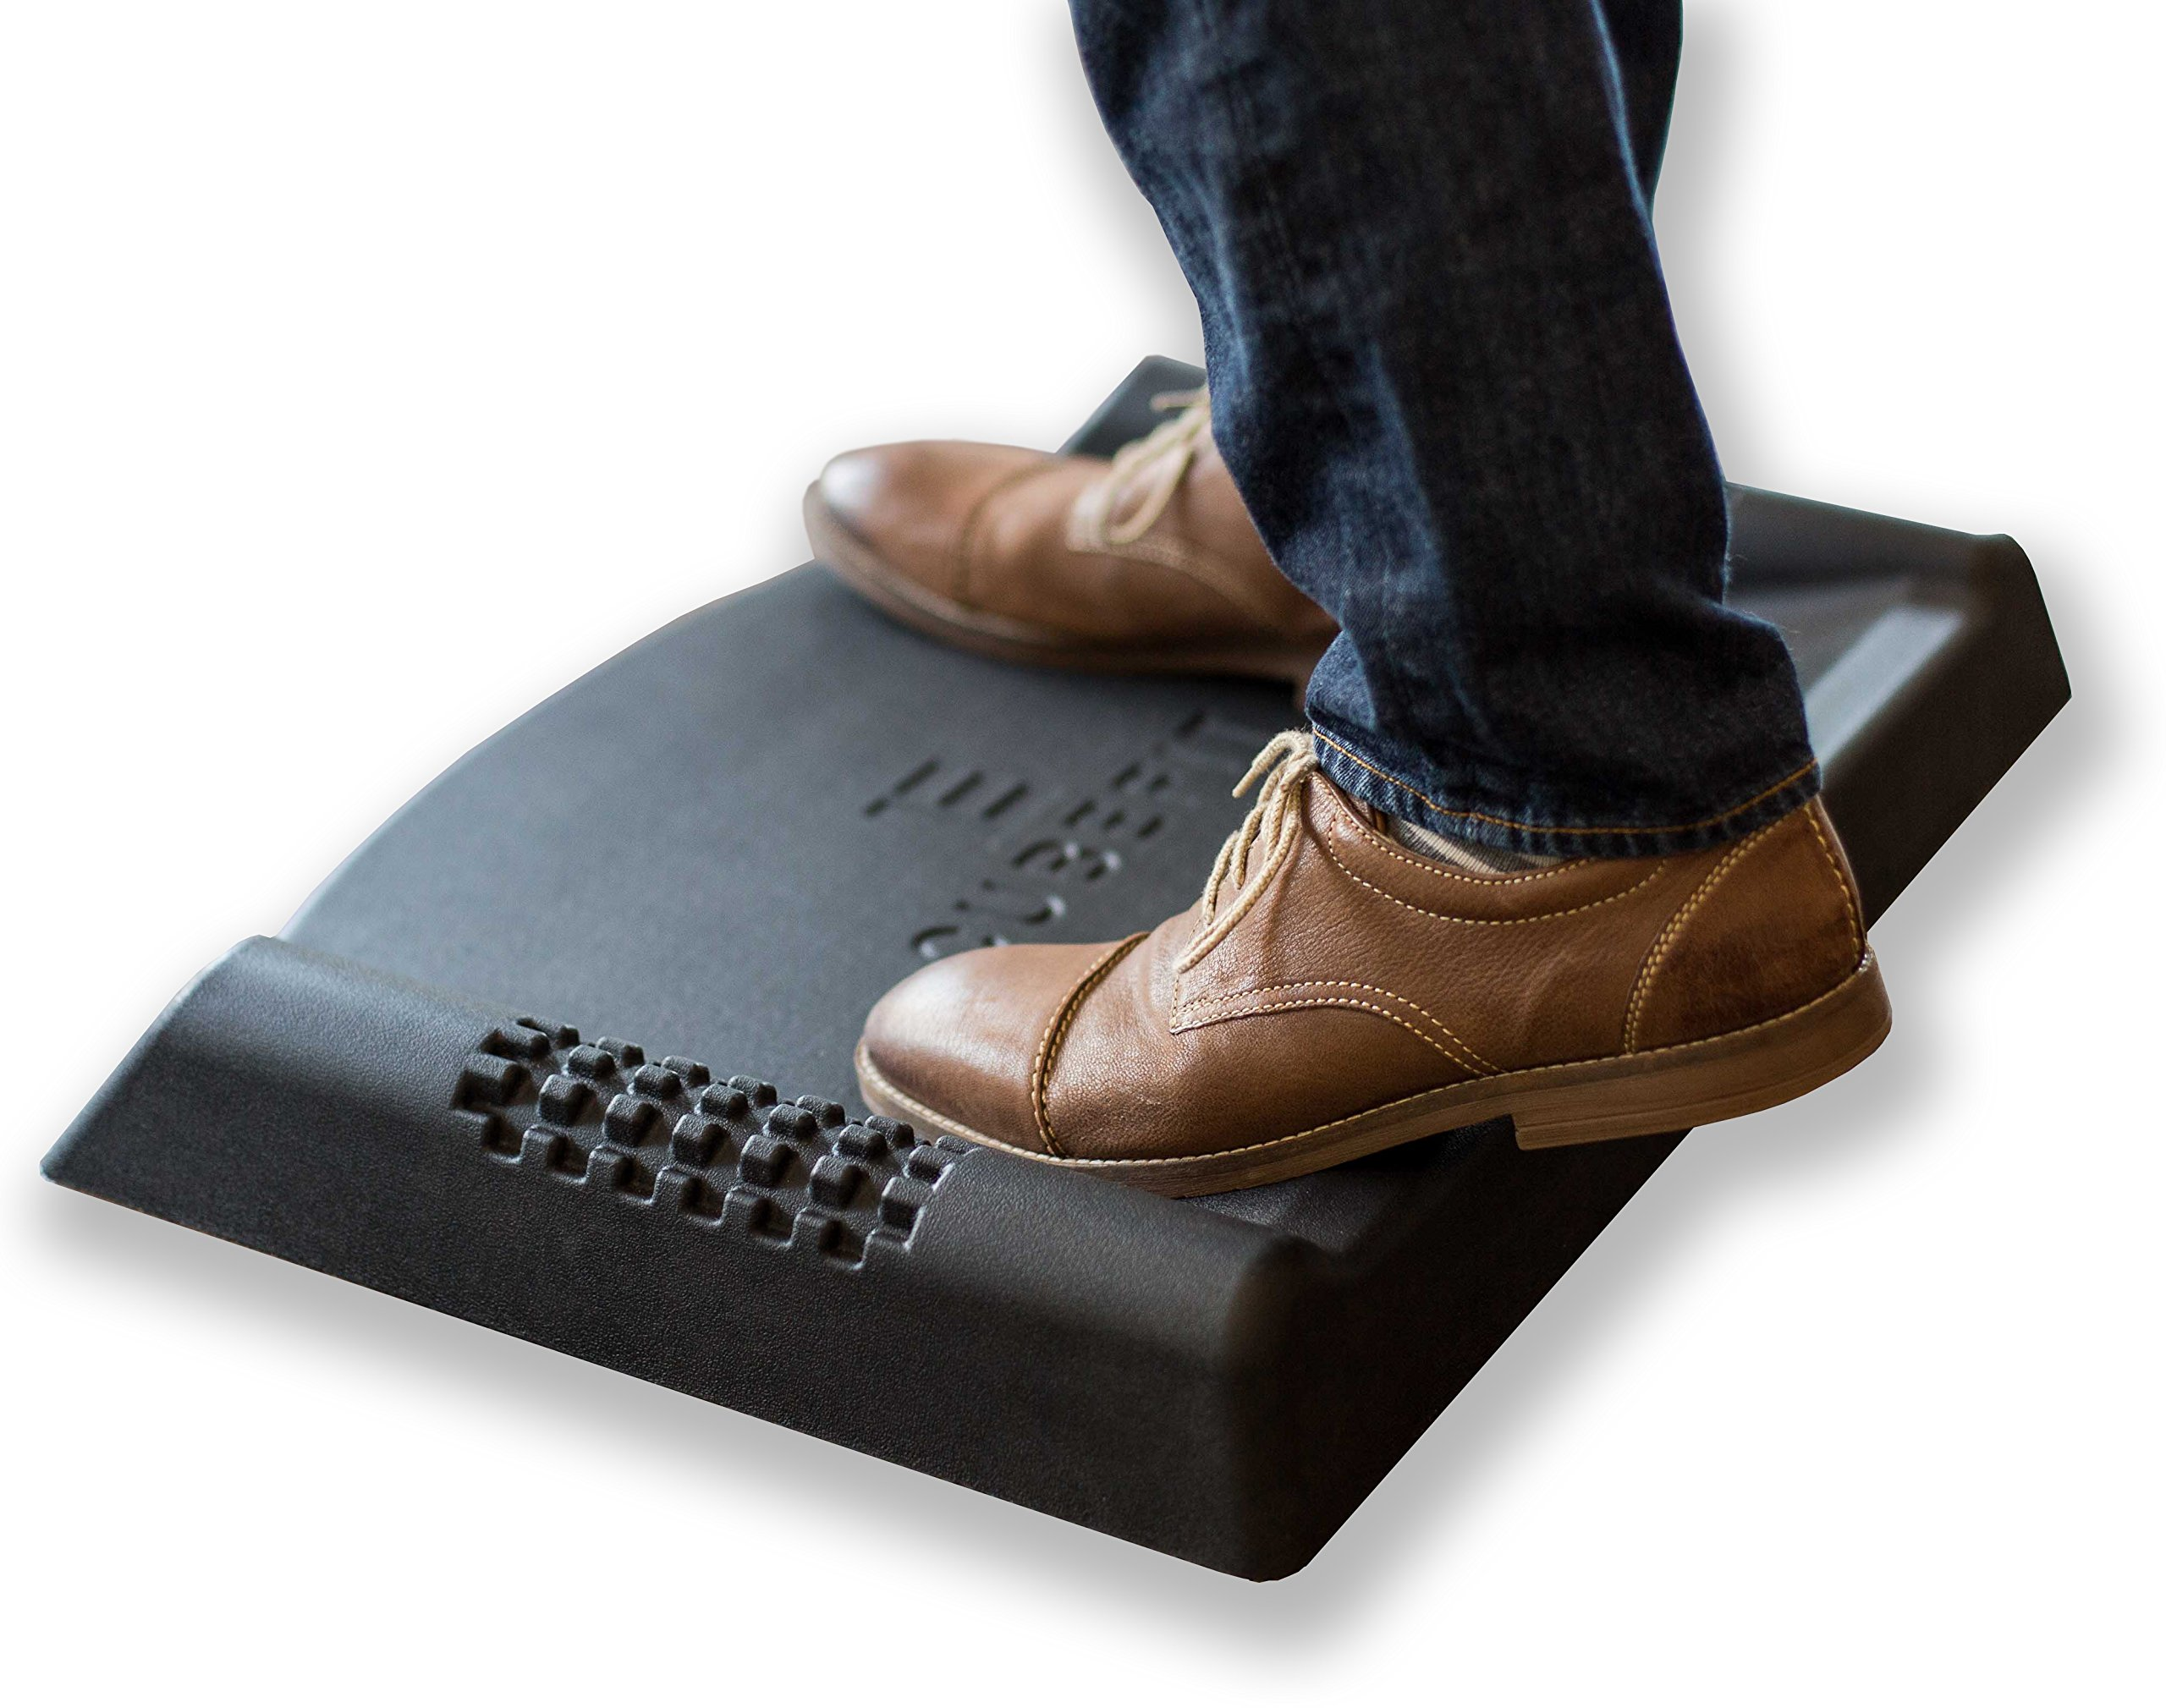 Terramat Lite Standing Desk Mat Ergonomic Anti Fatigue